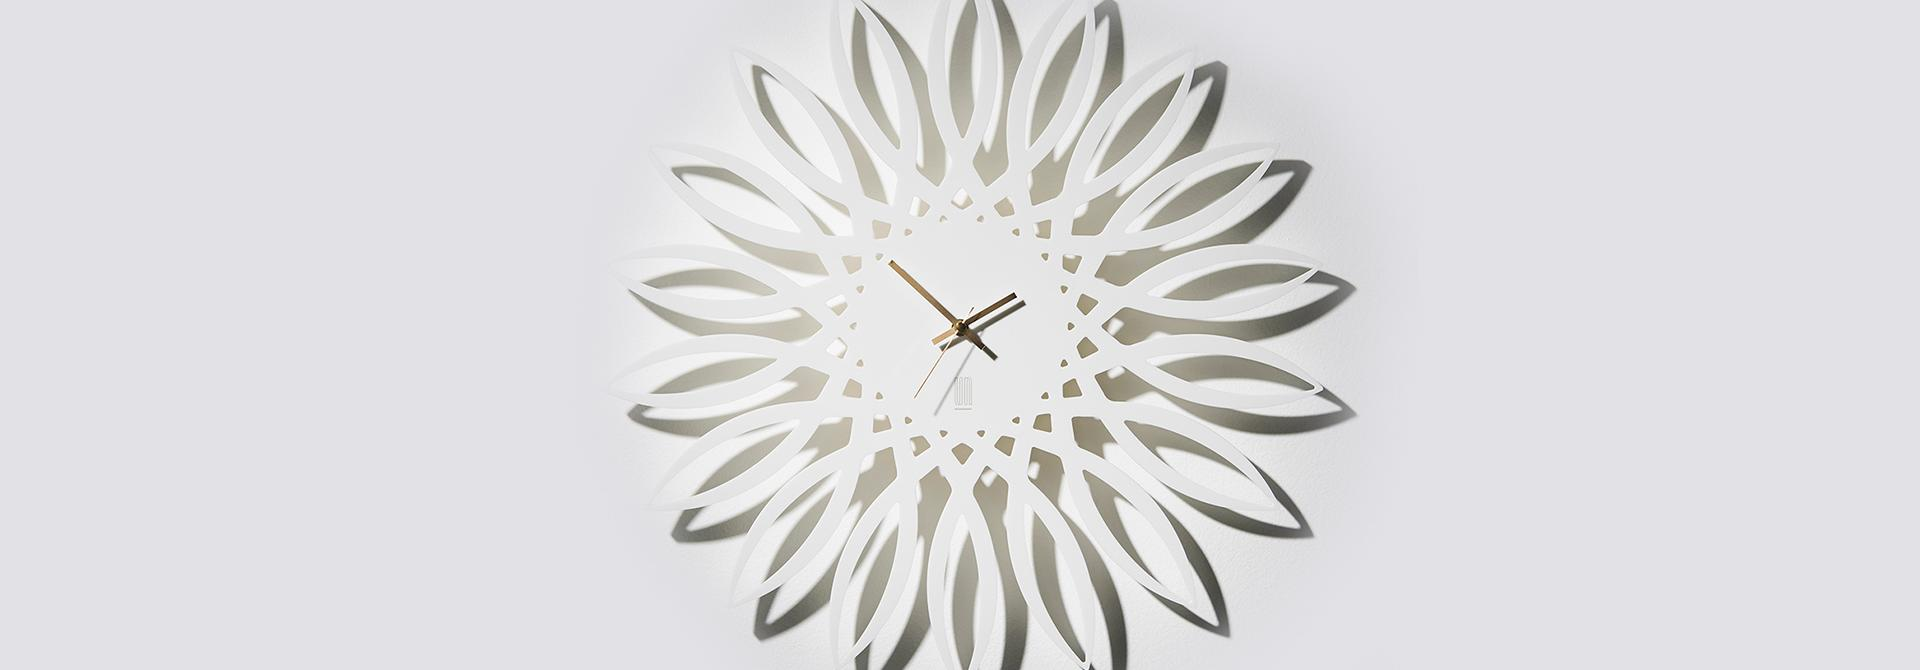 Wandklok sunflower wit